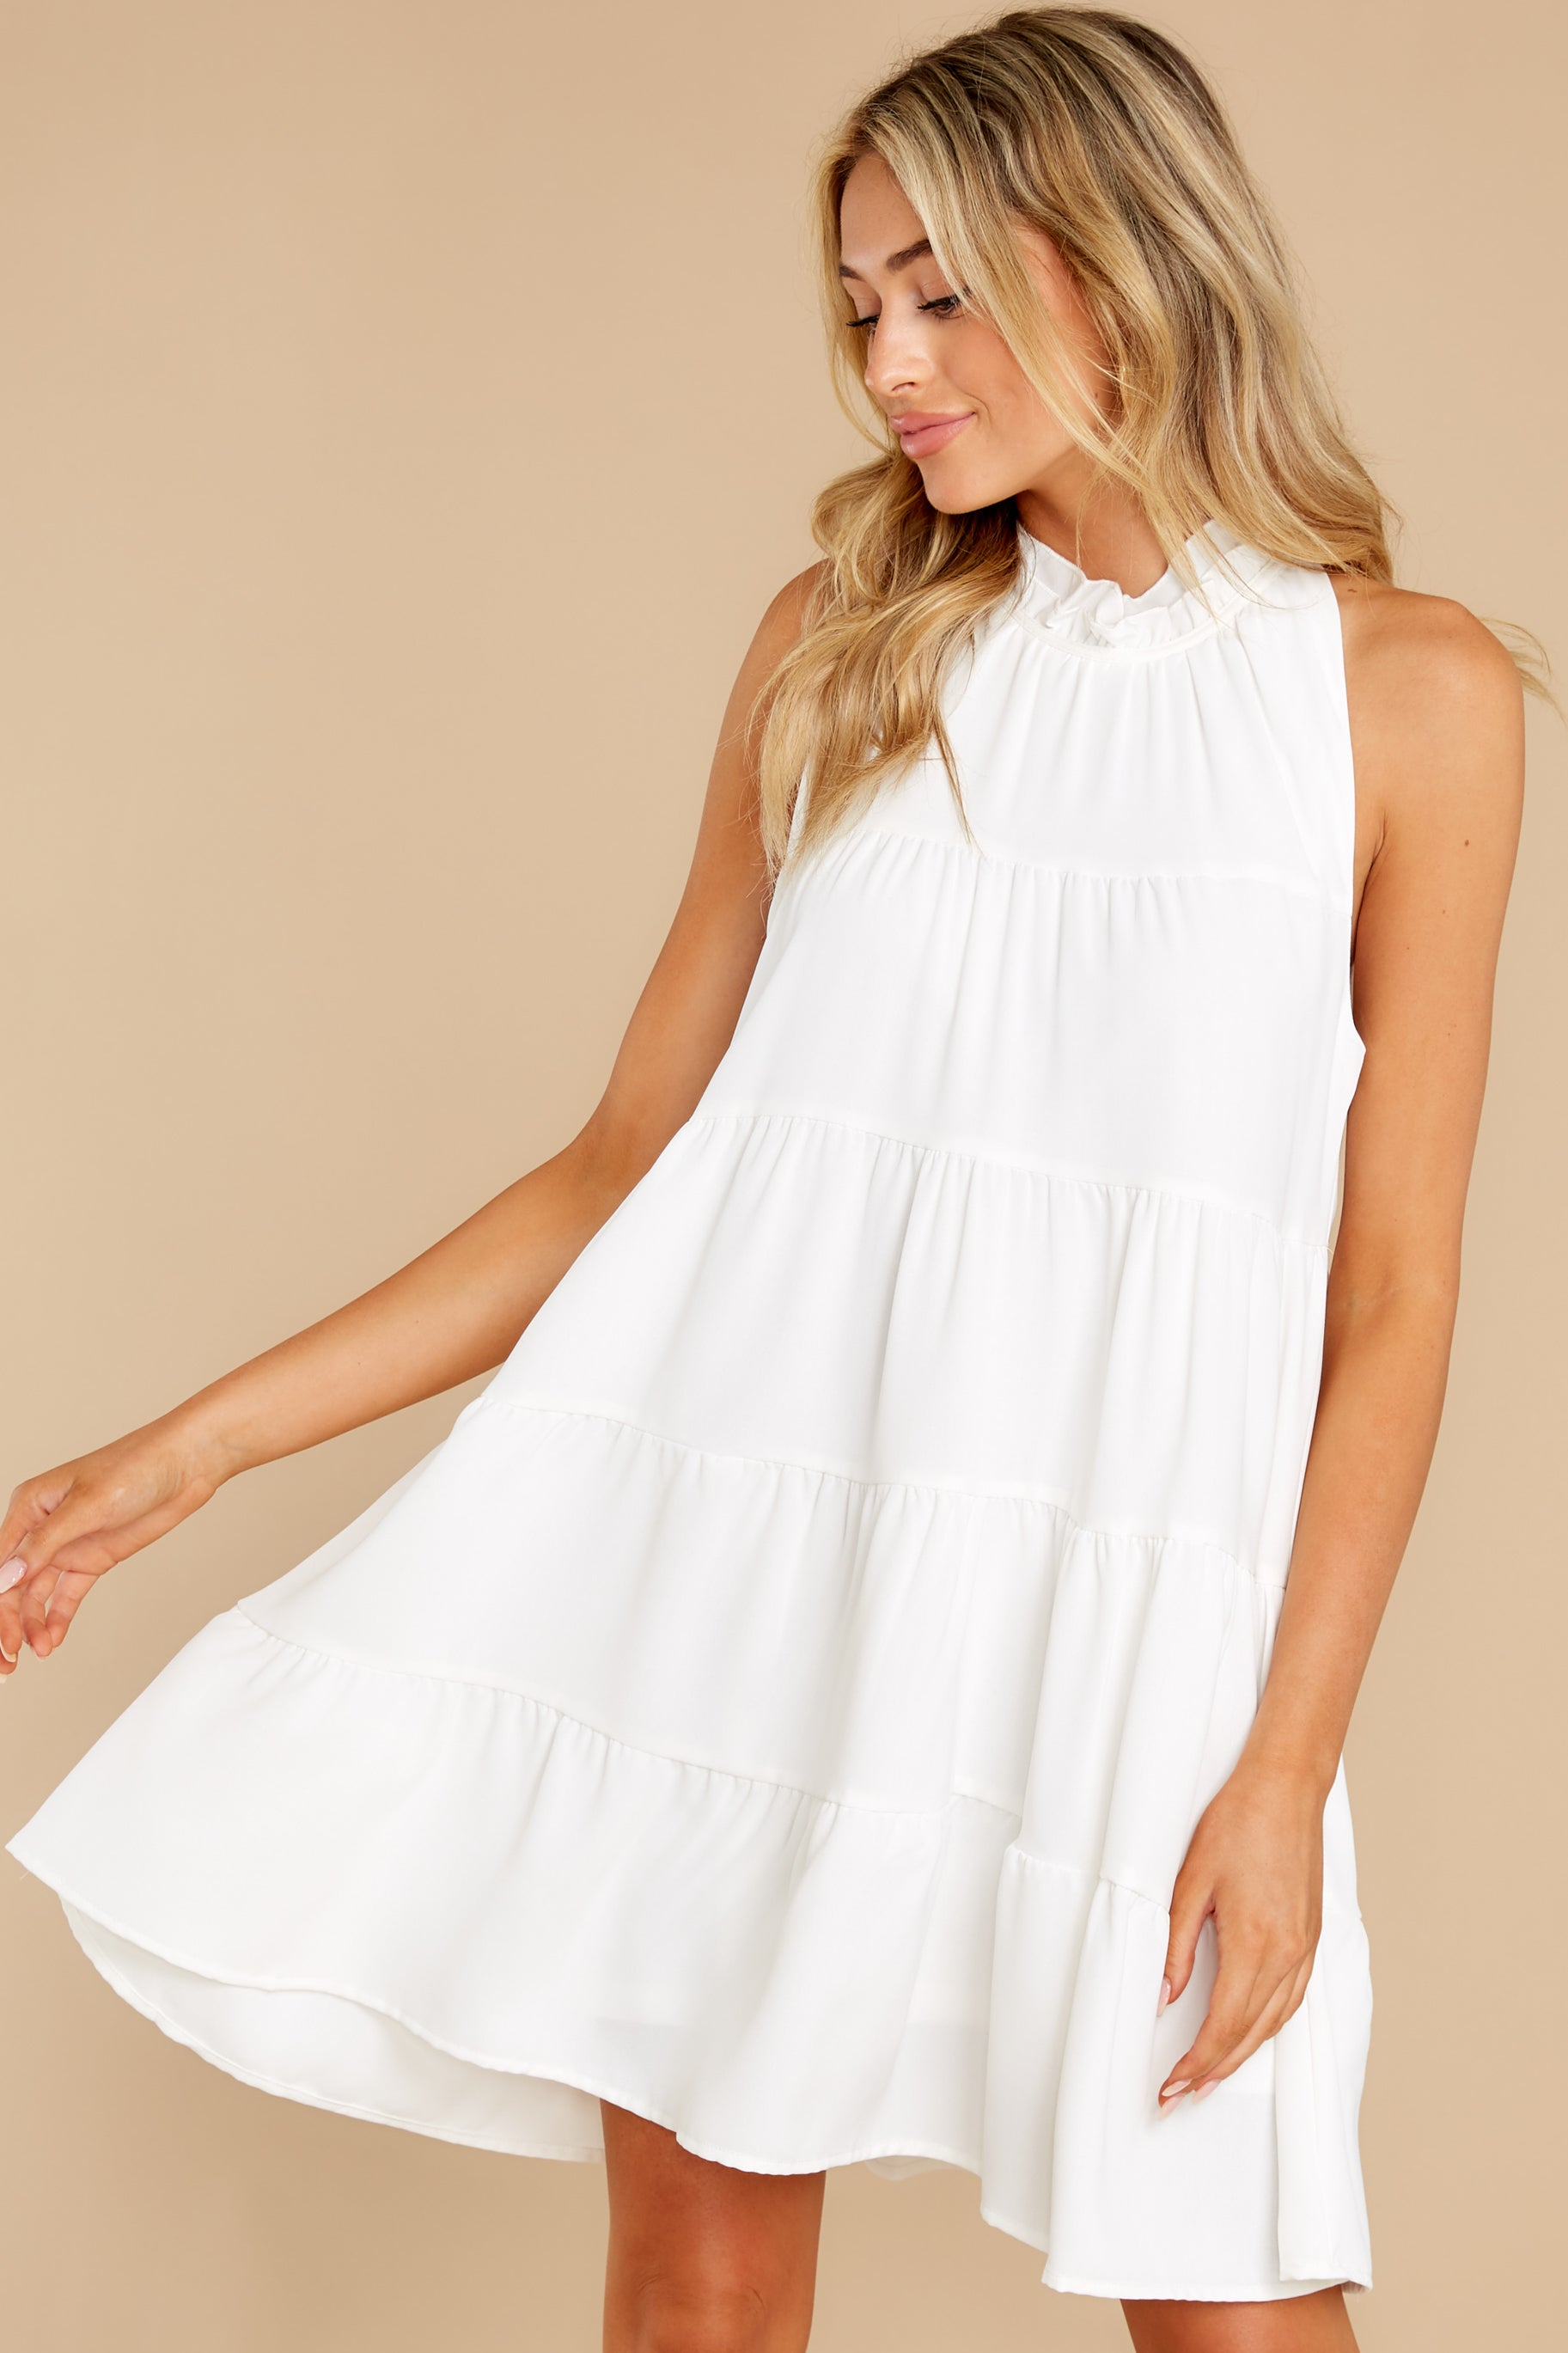 5 Cut To The Chase Off White Dress at reddress.com